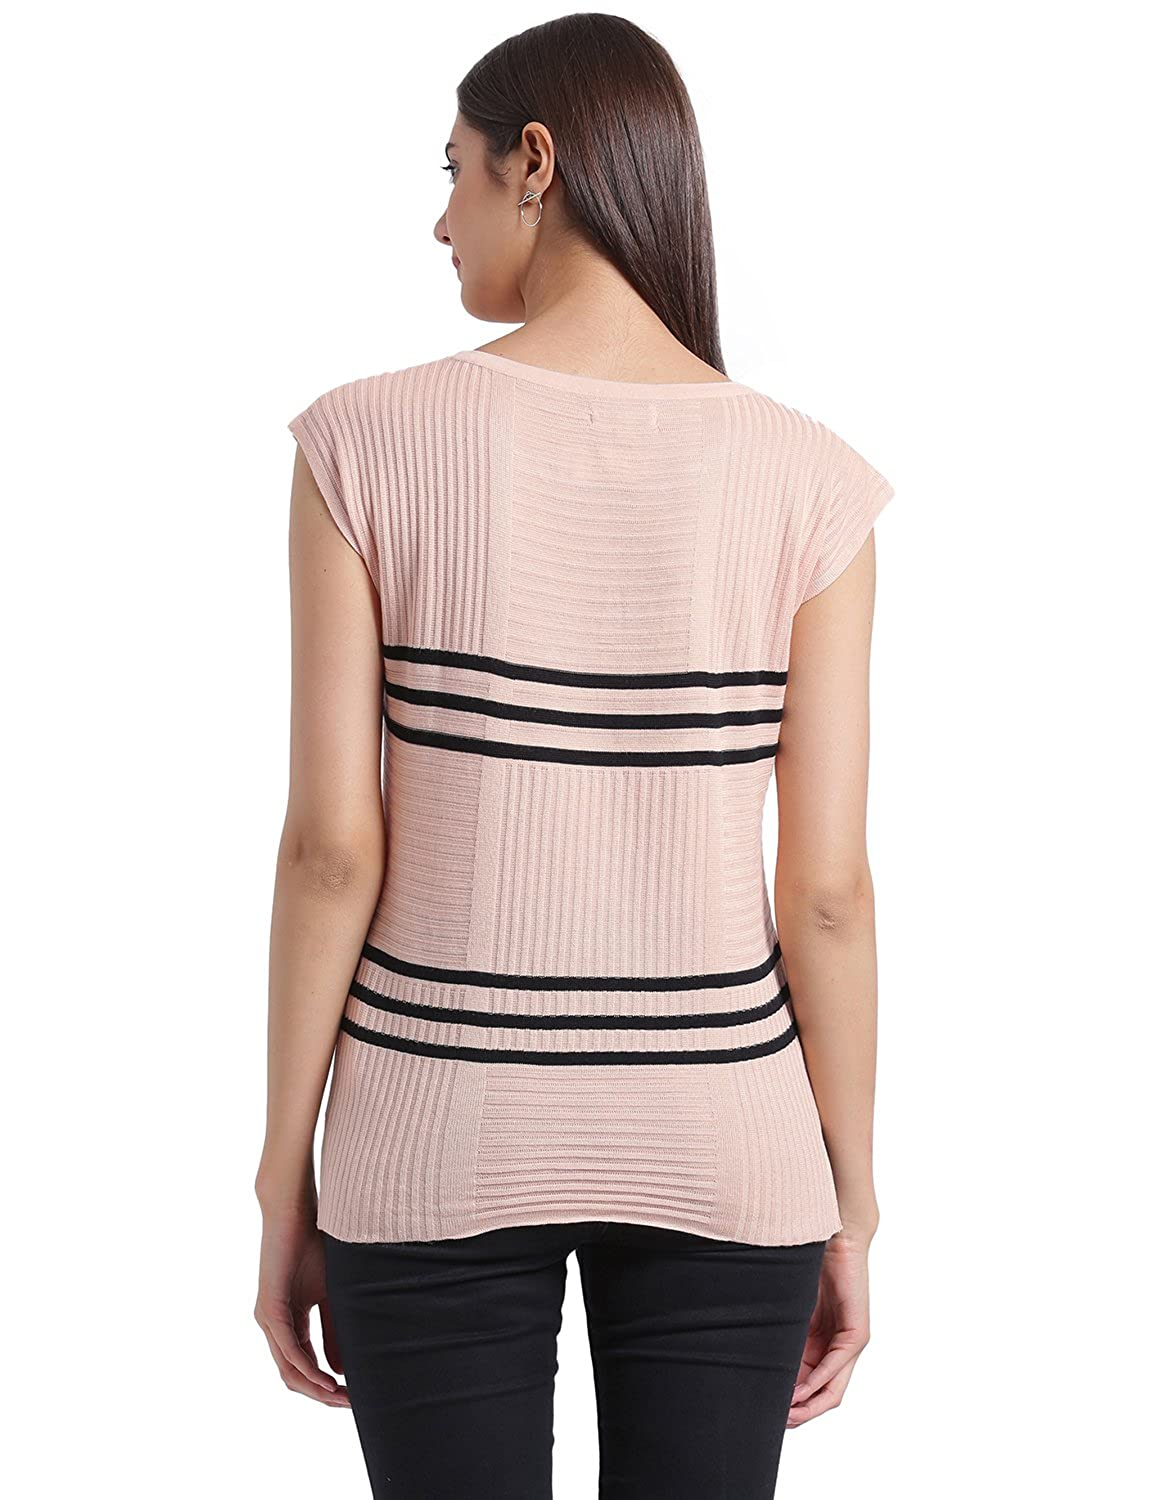 8ddaaf79d2 MANOLA Tops for Women in Western wear - Cotton Blend Material - Solid  Pullover Tshirt for Ladies - Women s Peach Short Sleeves Top - Stylish Tops  by for ...